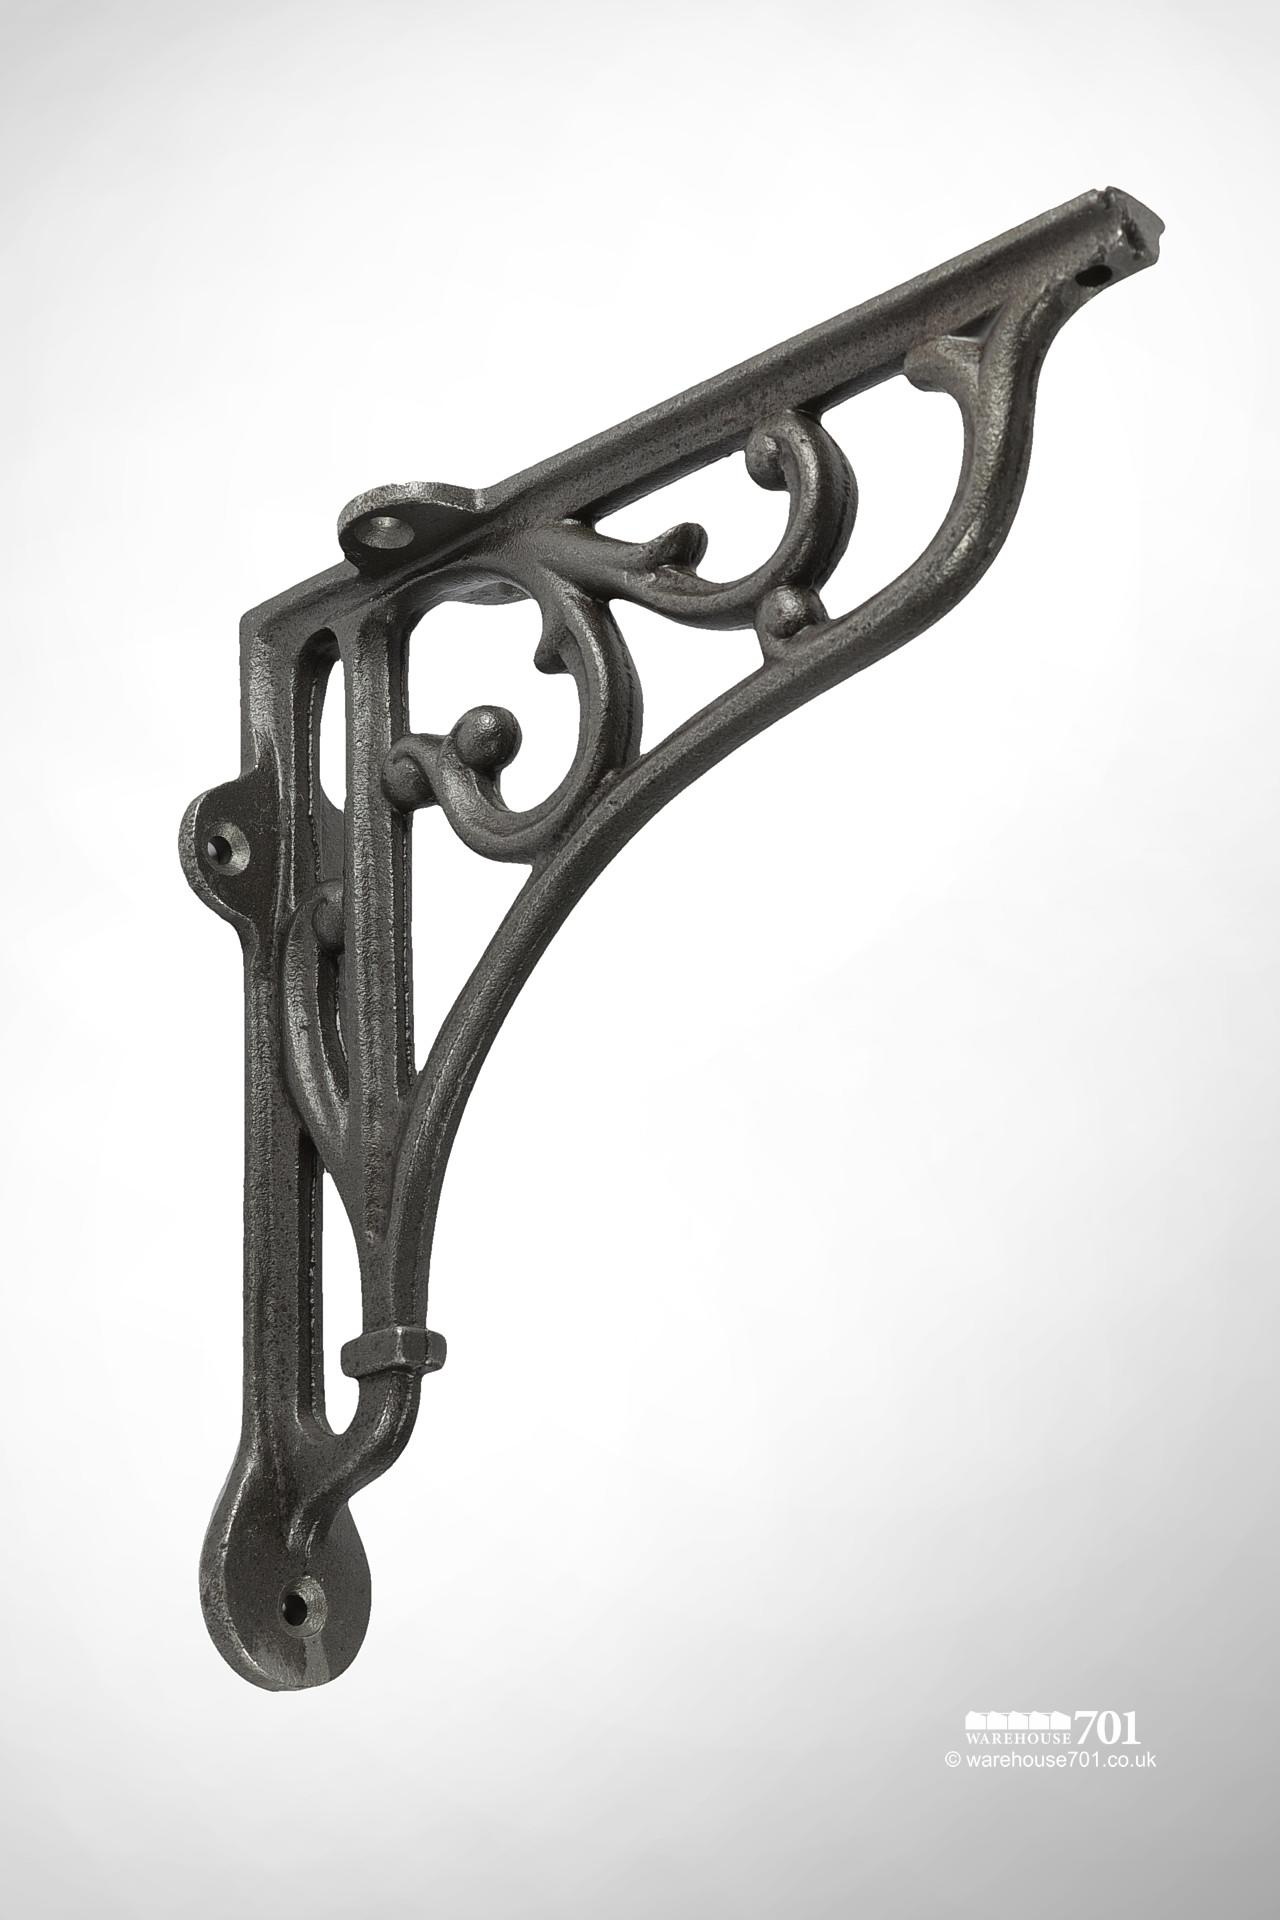 New Cast Iron Shelf or Wall Bracket with a Decorative Scroll Design